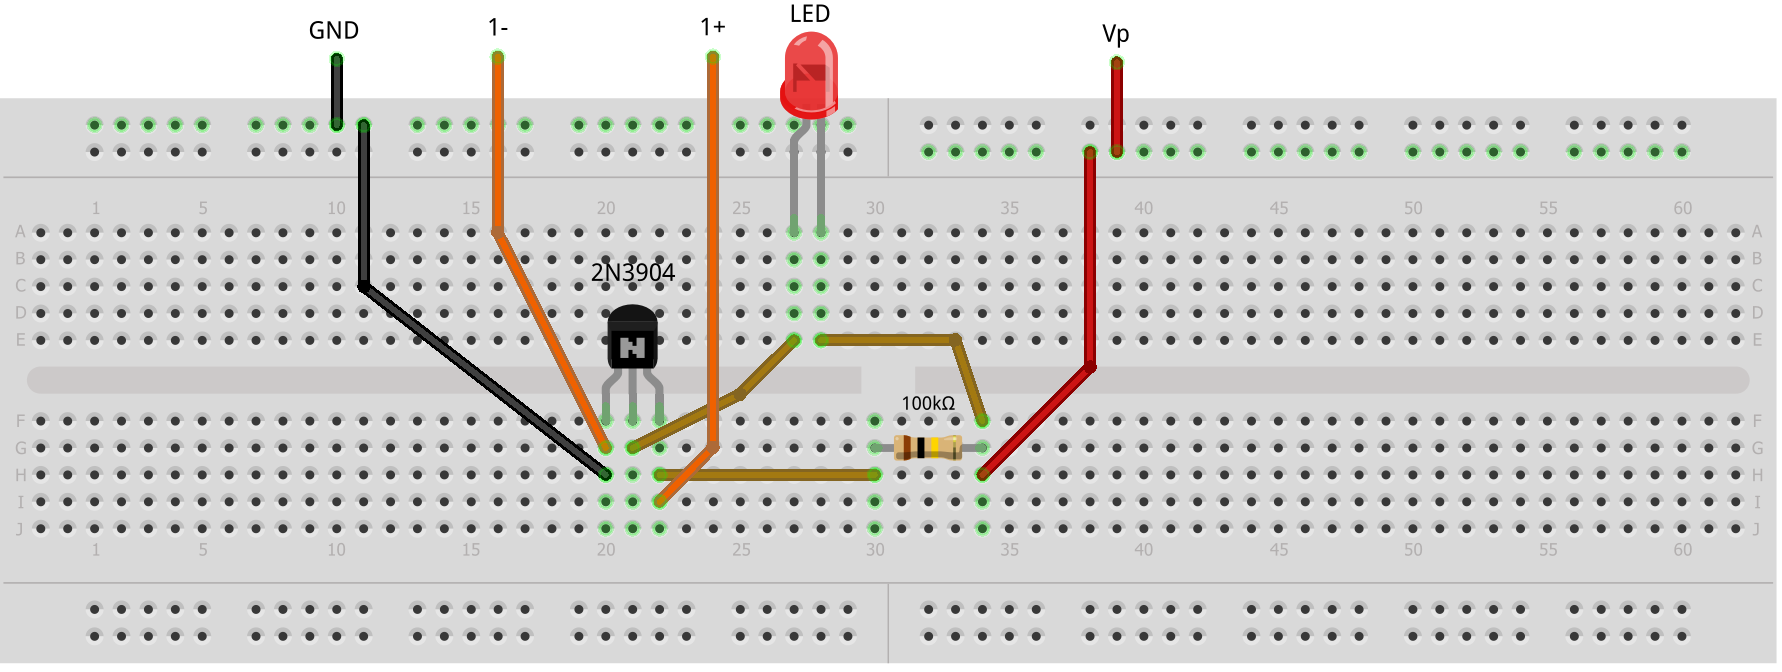 Activity Led As Light Sensor Analog Devices Wiki Improved Infrared Detector Circuit Figure 2 And Single Common Emitter Npn Breadboard